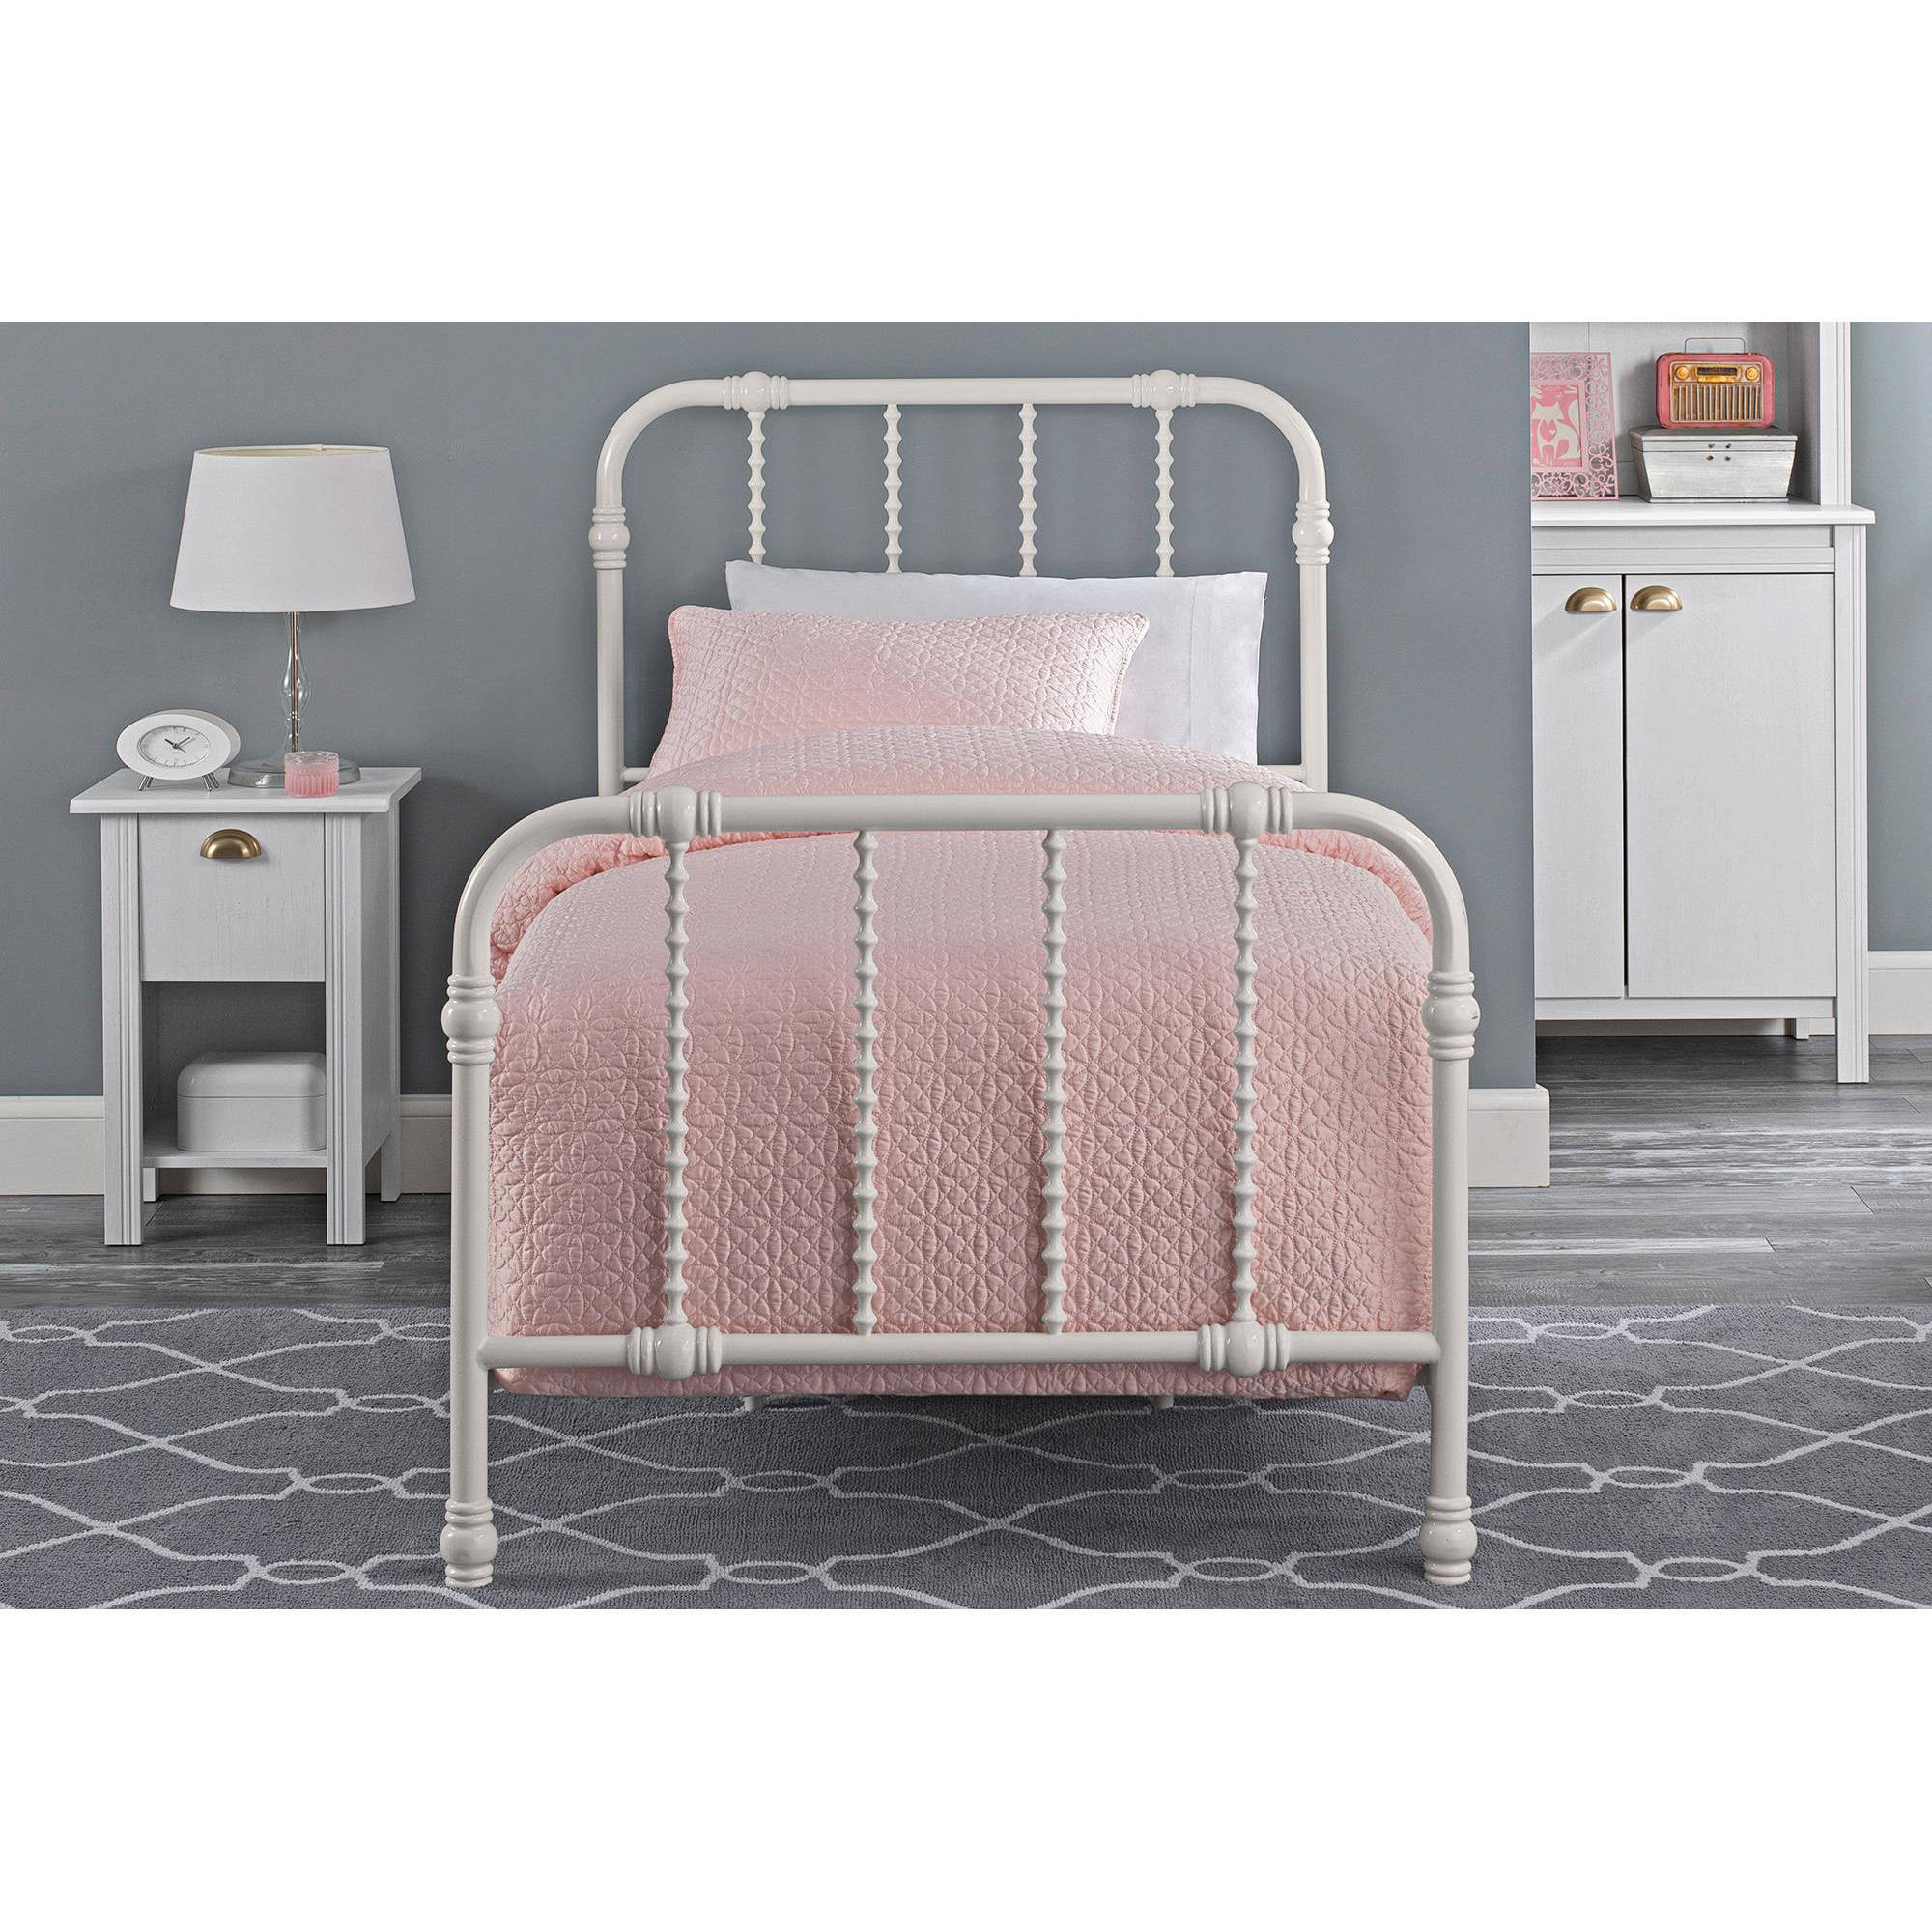 Dhp jenny lind metal bed white multiple sizes and colors